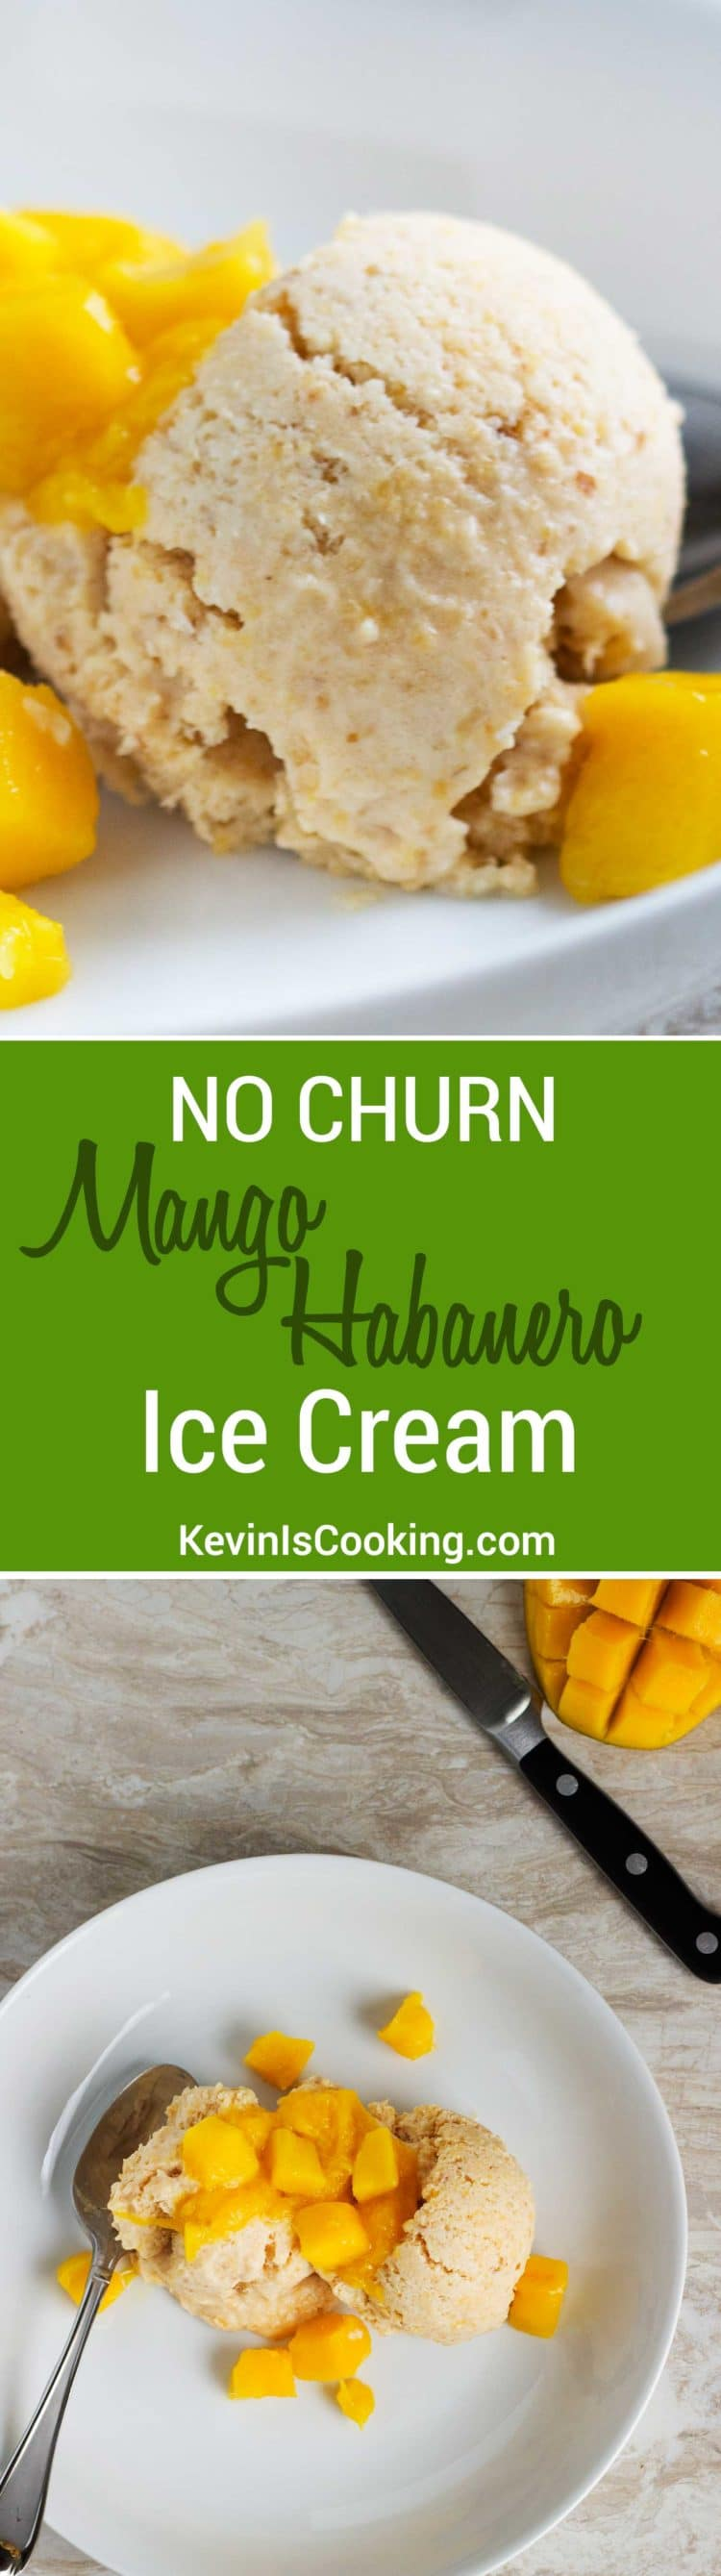 I kid you not this no churn mango ice cream has habanero sauce in it and it is amazing! We can't stop eating it. Not hot like you'd think, amazing!